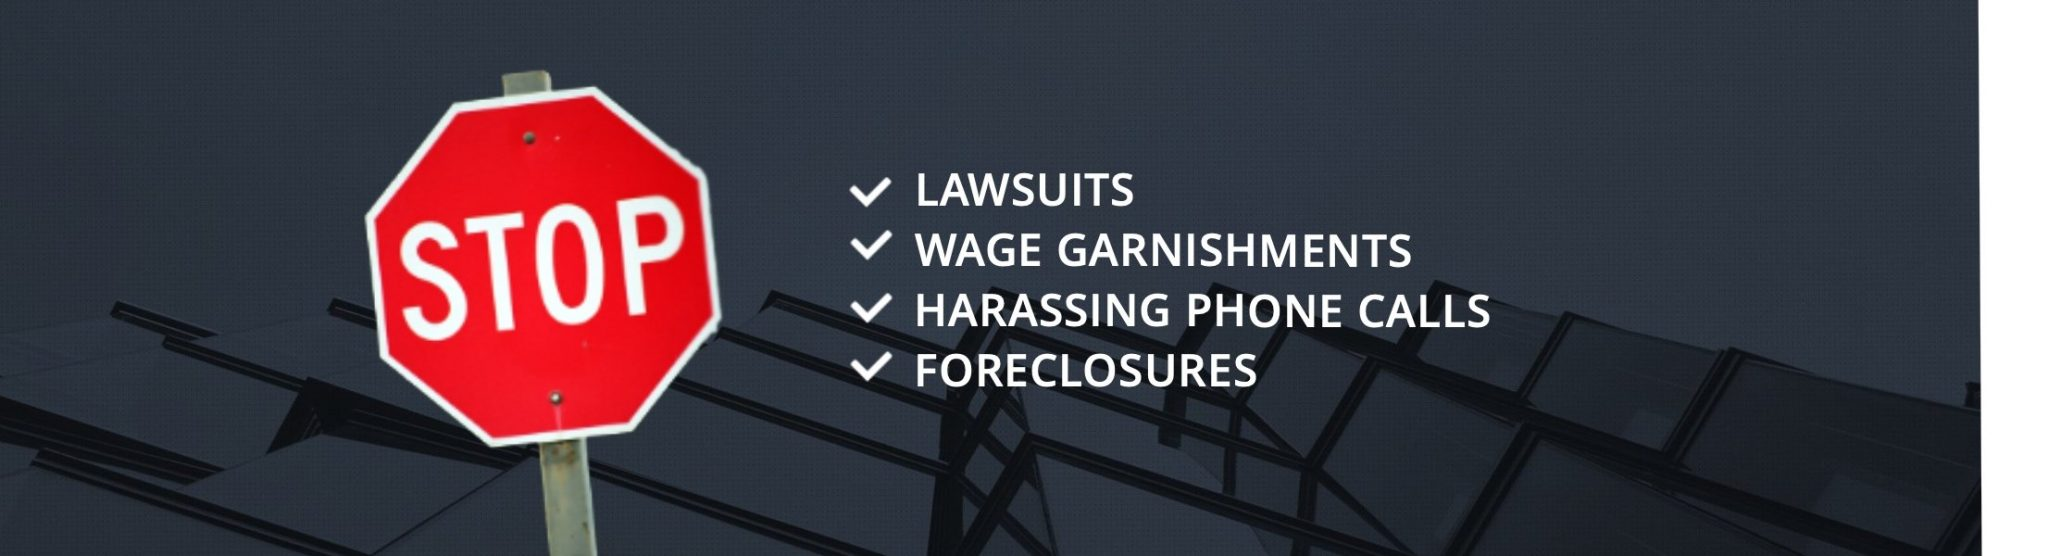 Bankruptcy - Stop Lawsuits - Wage Garnishments - Harassing Phone Calls - Foreclosures